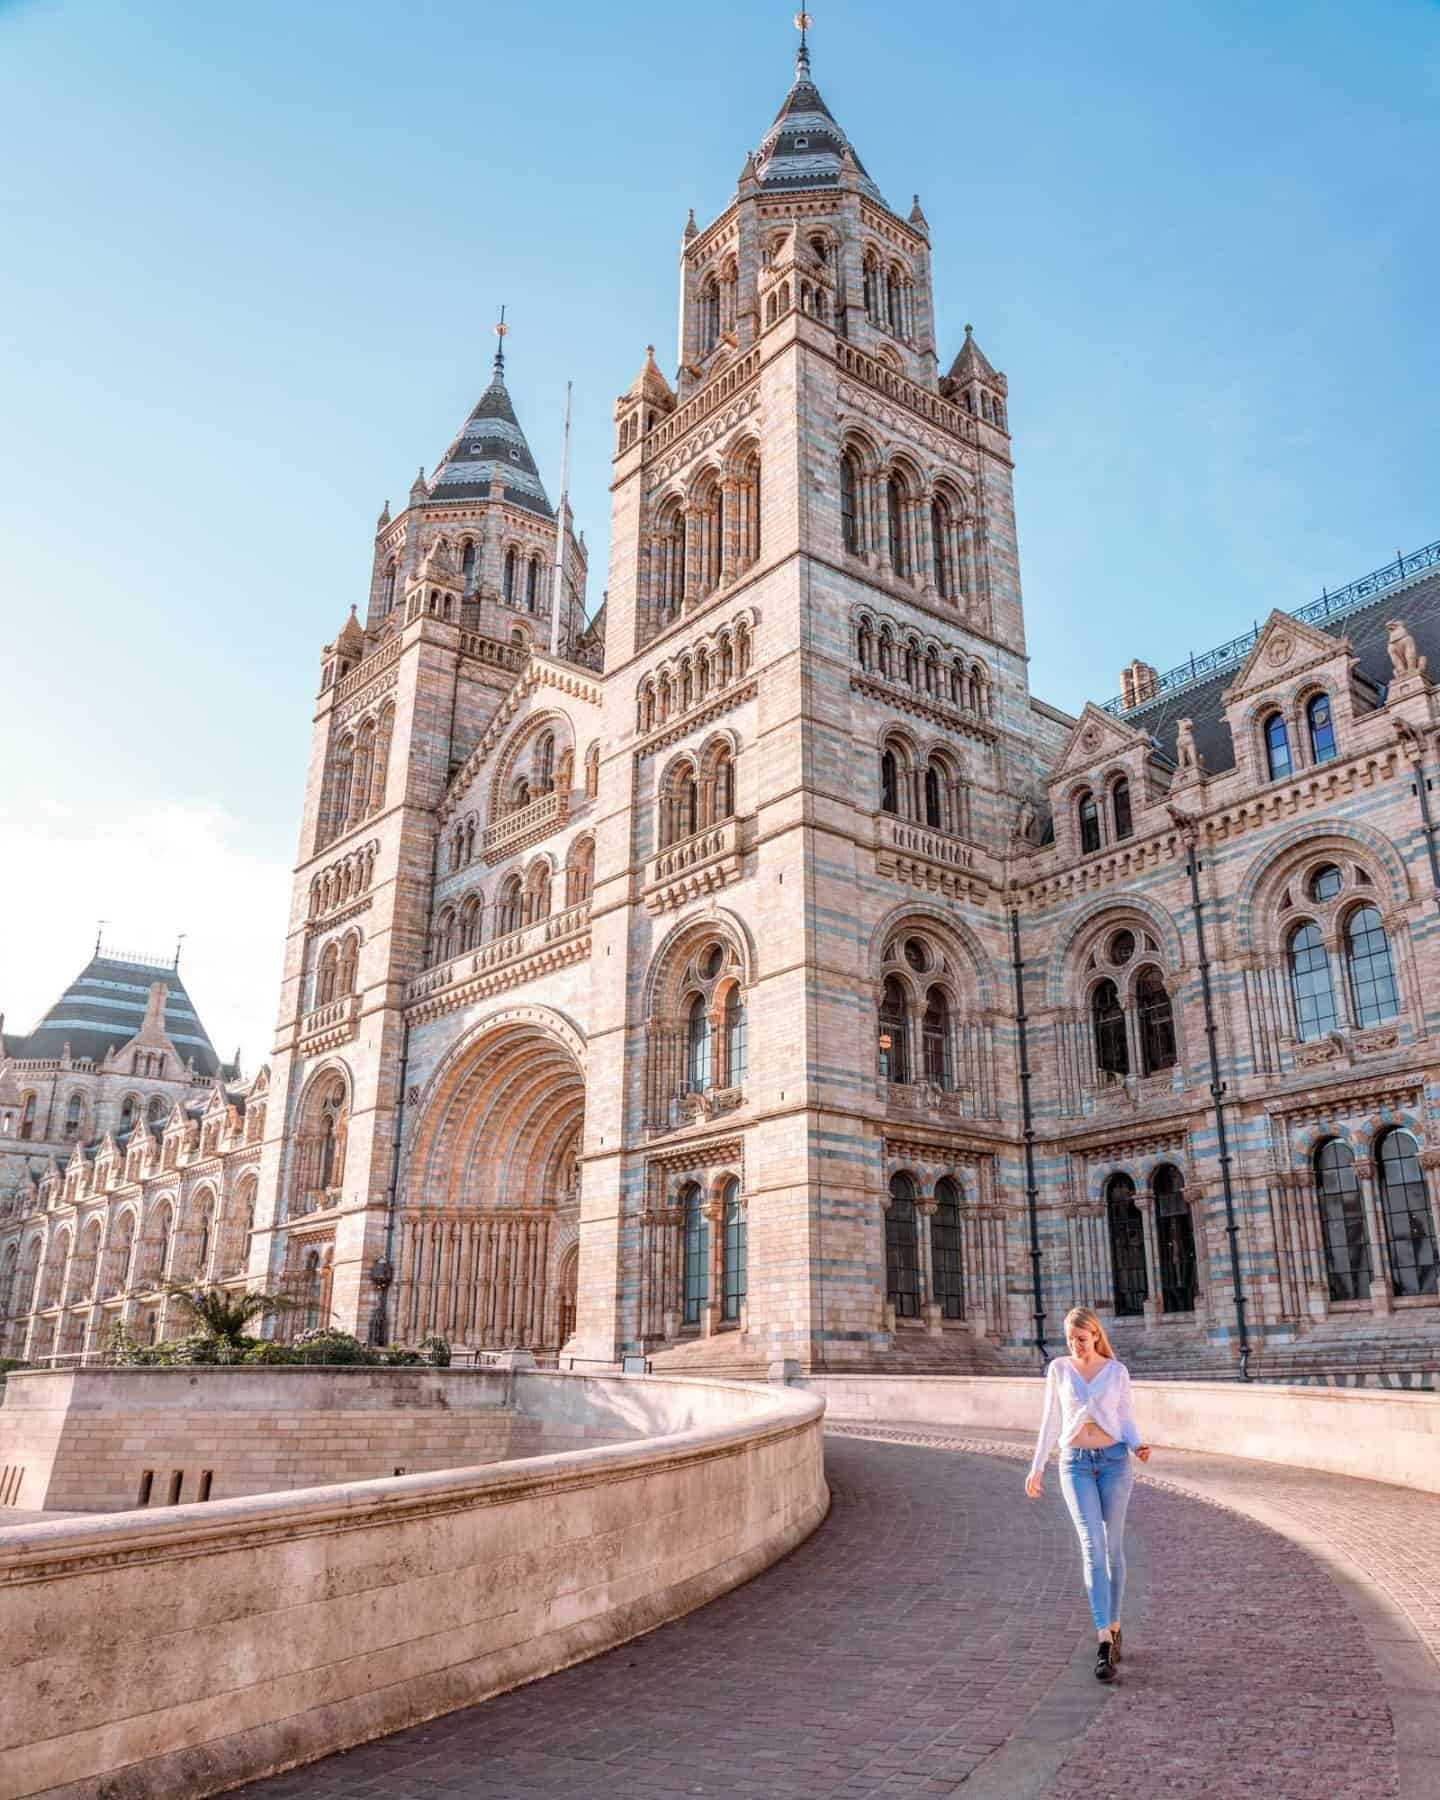 The exterior of the Natural history museum - one of the most instagrammable places in London